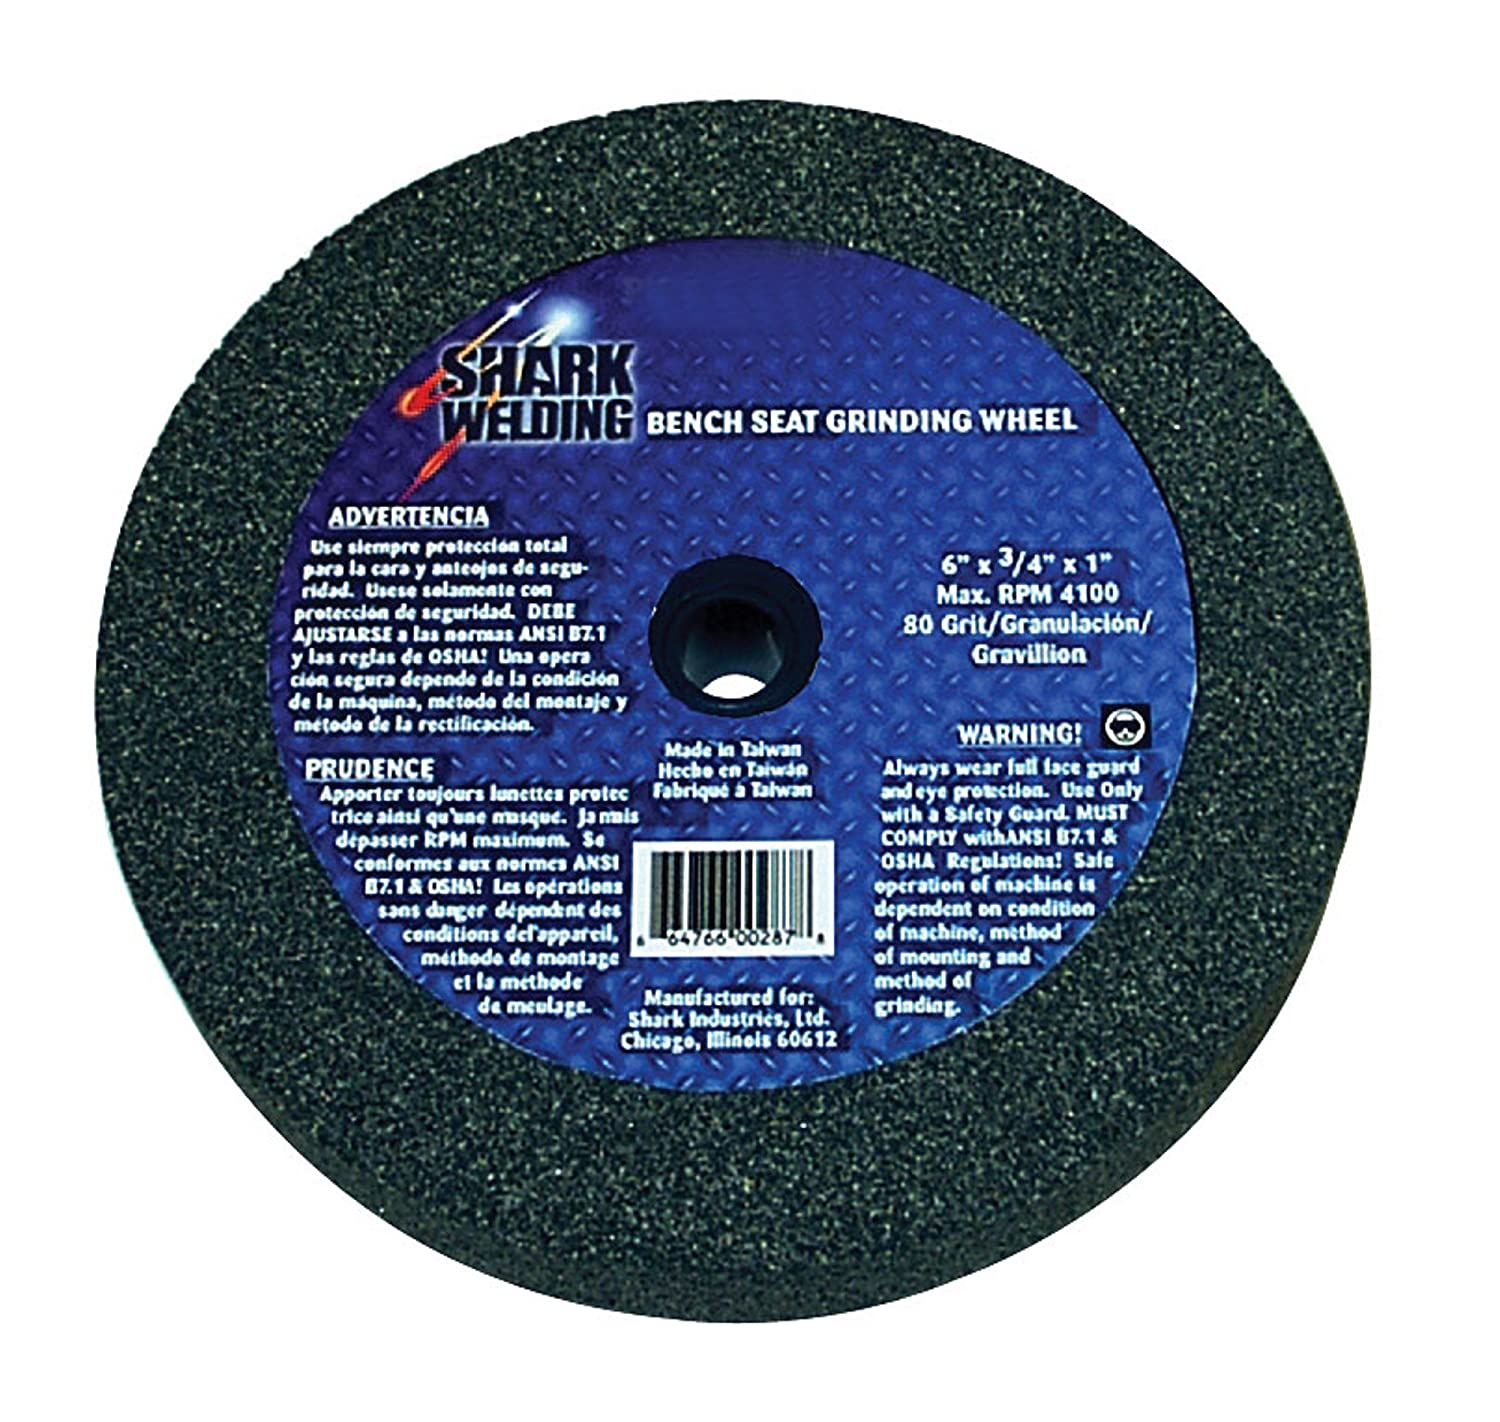 Shark 12777    7-Inch by 1-Inch Bench Seat Grinding Wheel with Grit-36